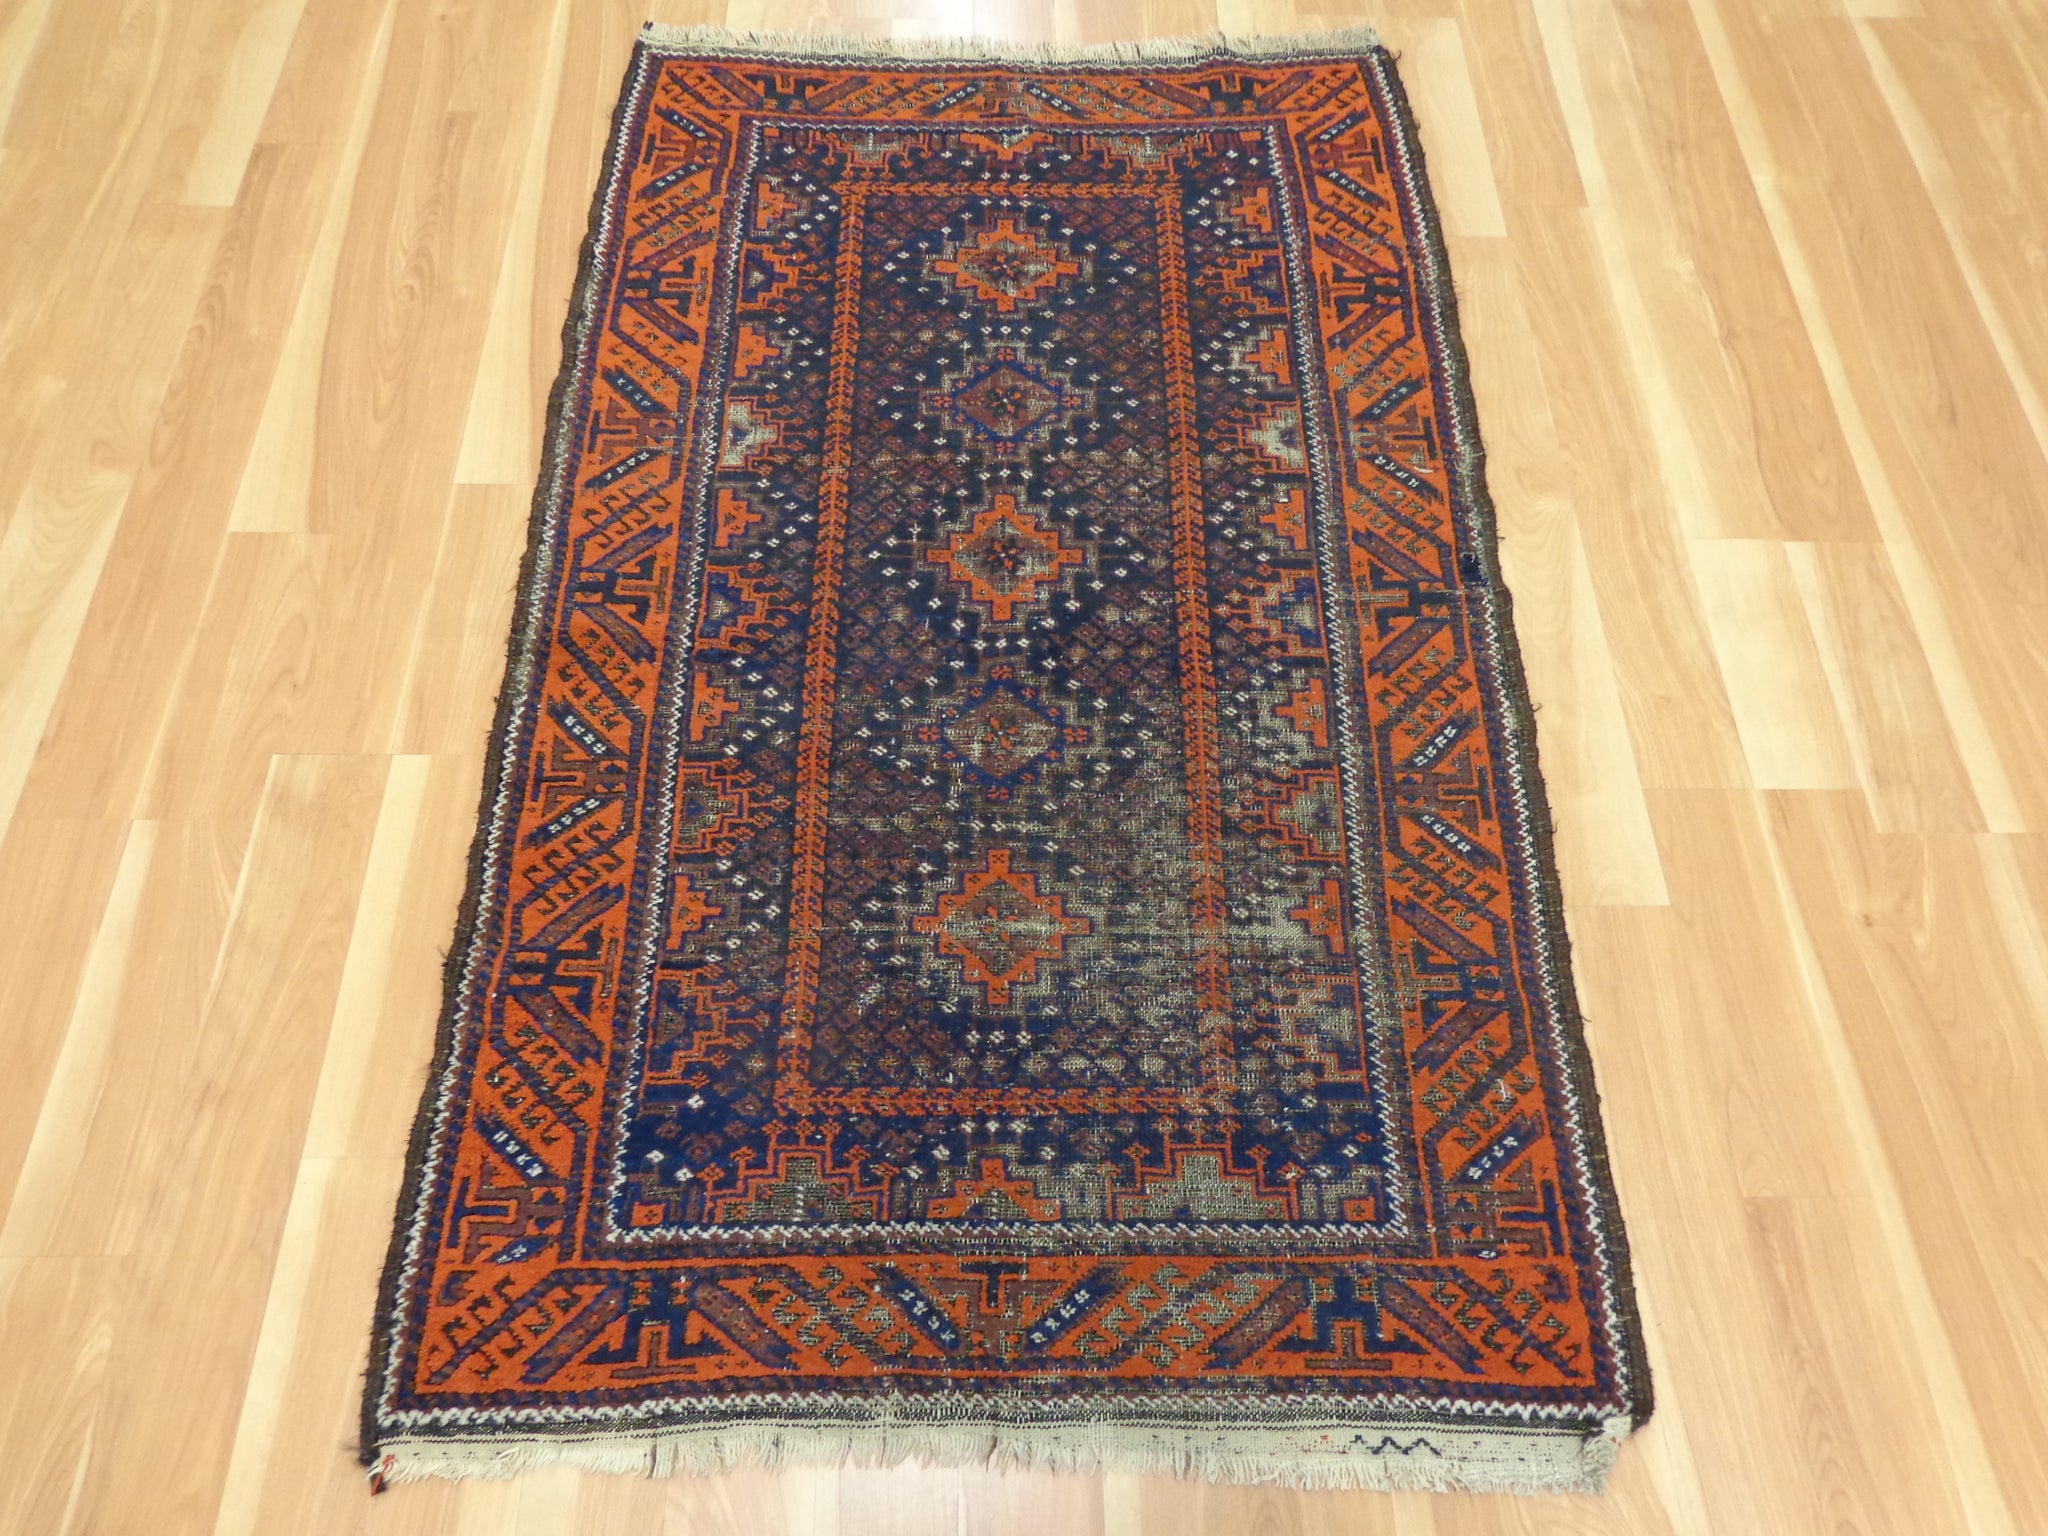 Antique Rug, 3' 2 x 5' 4 Blue Baluch